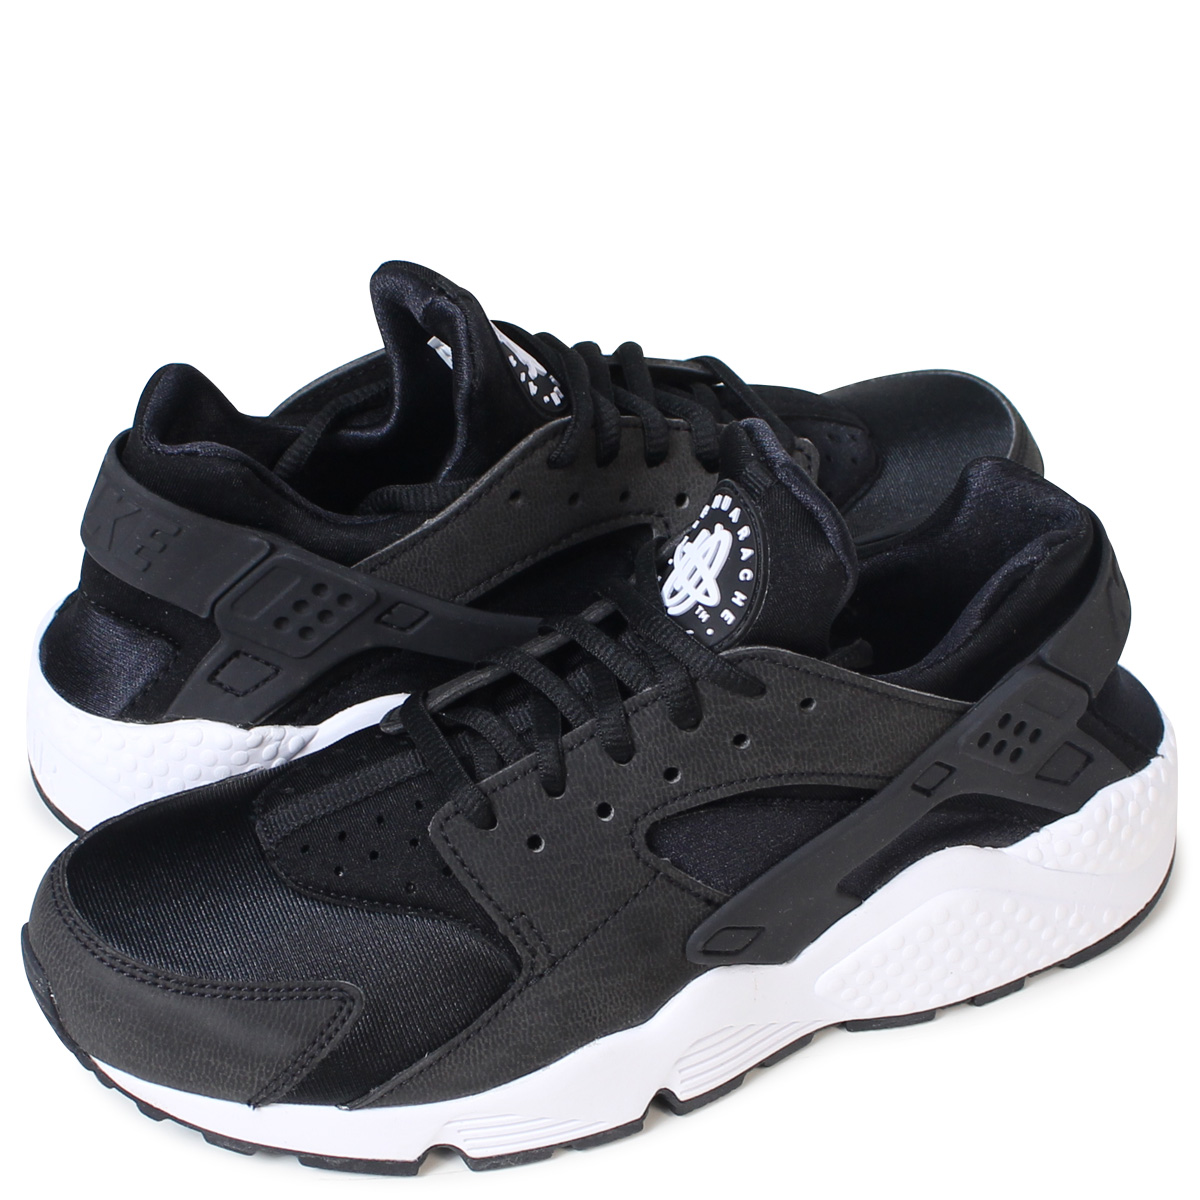 ALLSPORTS | Rakuten Global Market: NIKE ナイキエアハラチレディーススニーカー WMNS AIR HUARACHE RUN 634,835-006 shoes black [load planned Shinnyu load in reservation product 9/16 containing] [179]